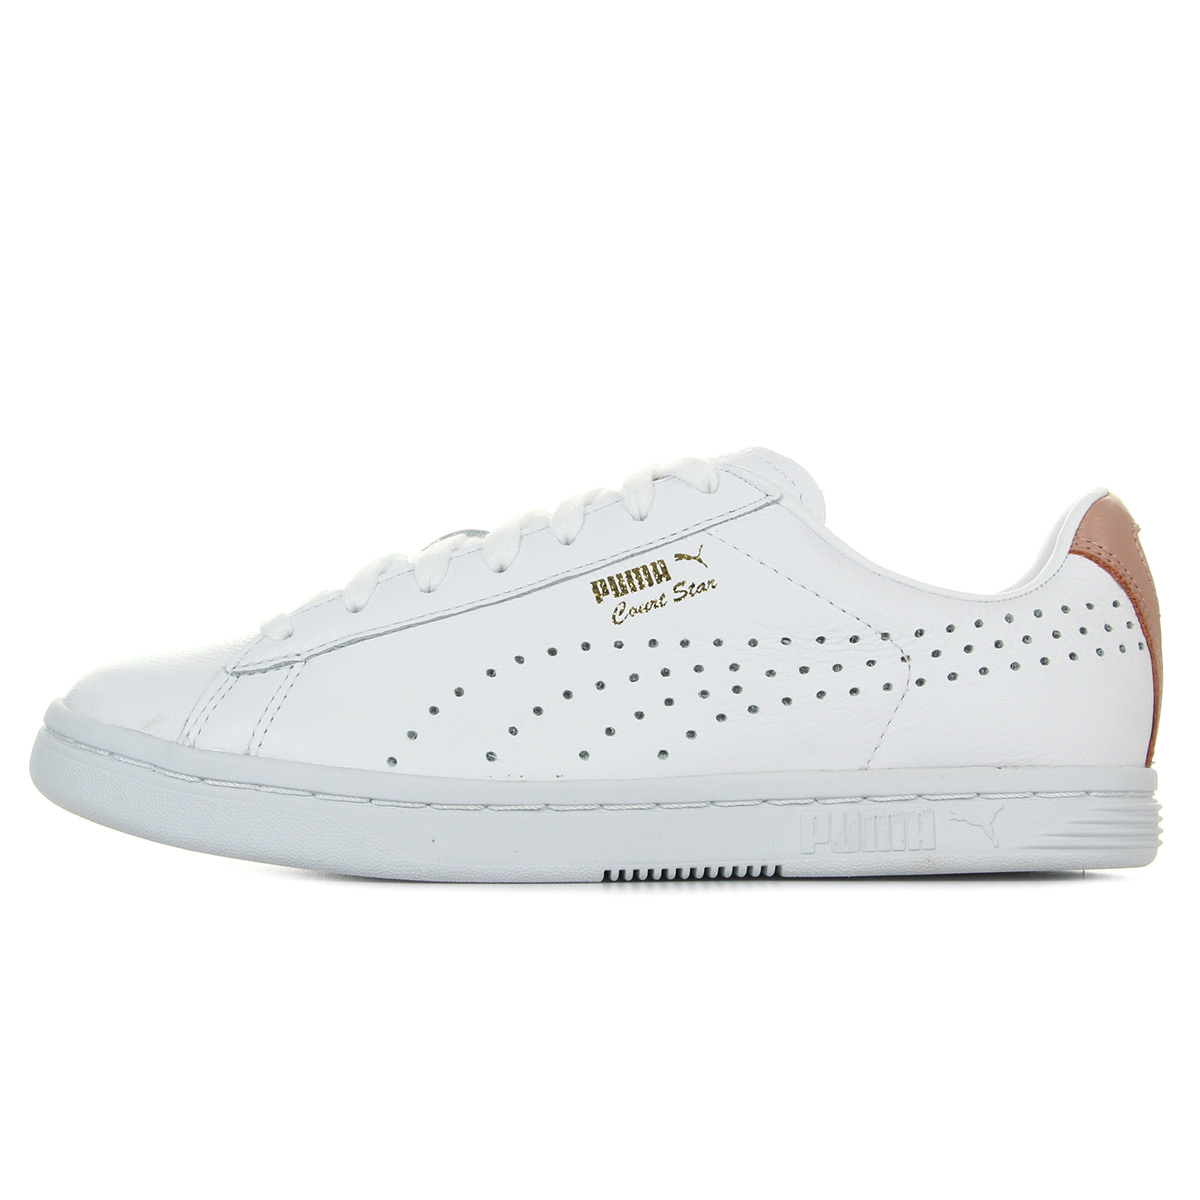 Chaussures à lacets Converse Star Player blanches Casual unisexe klzqBA